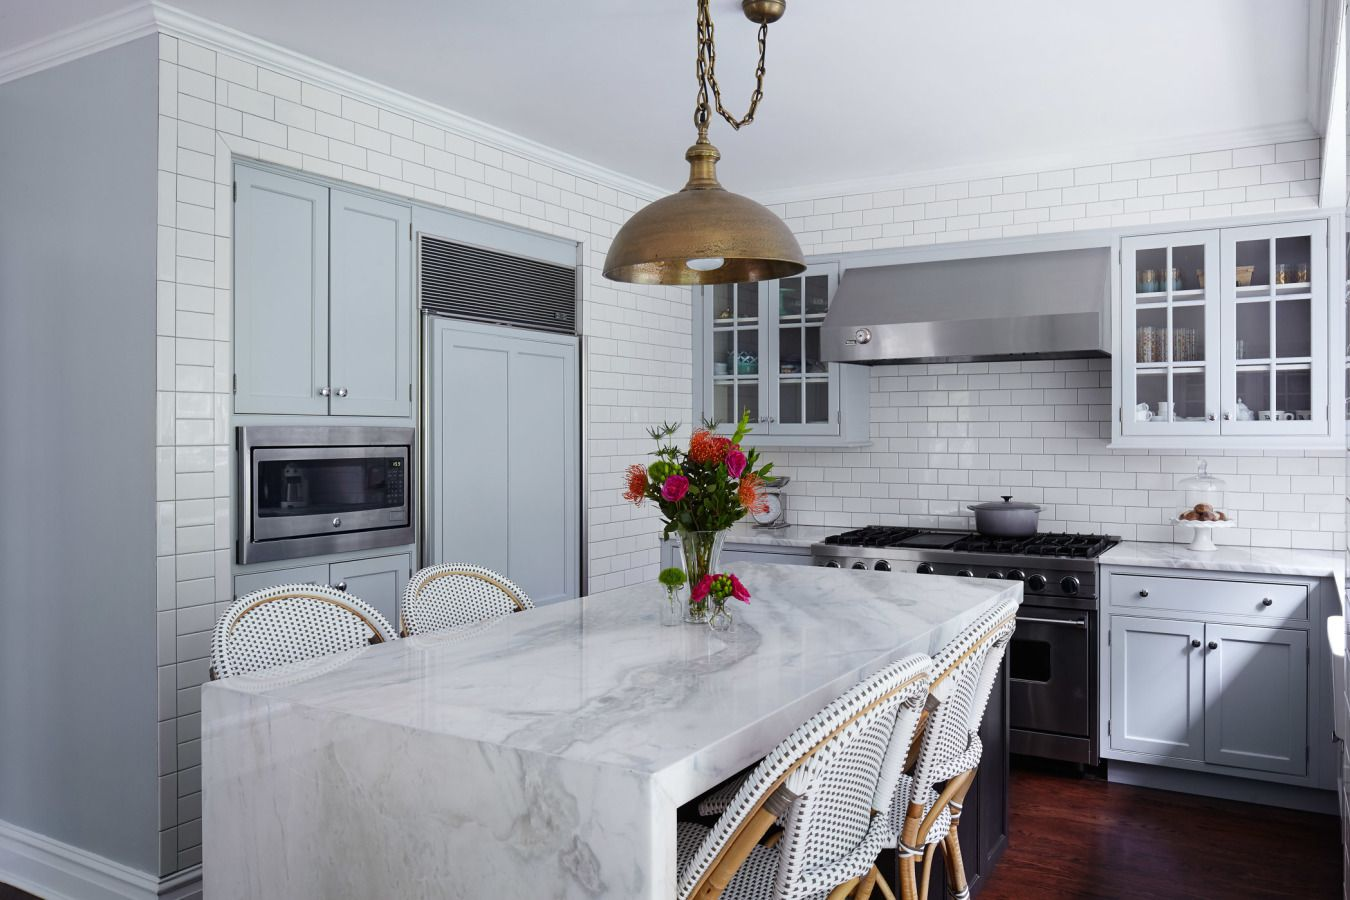 Pushing the Boundaries in a Chicago Home | Marbles, Kitchens and Steel